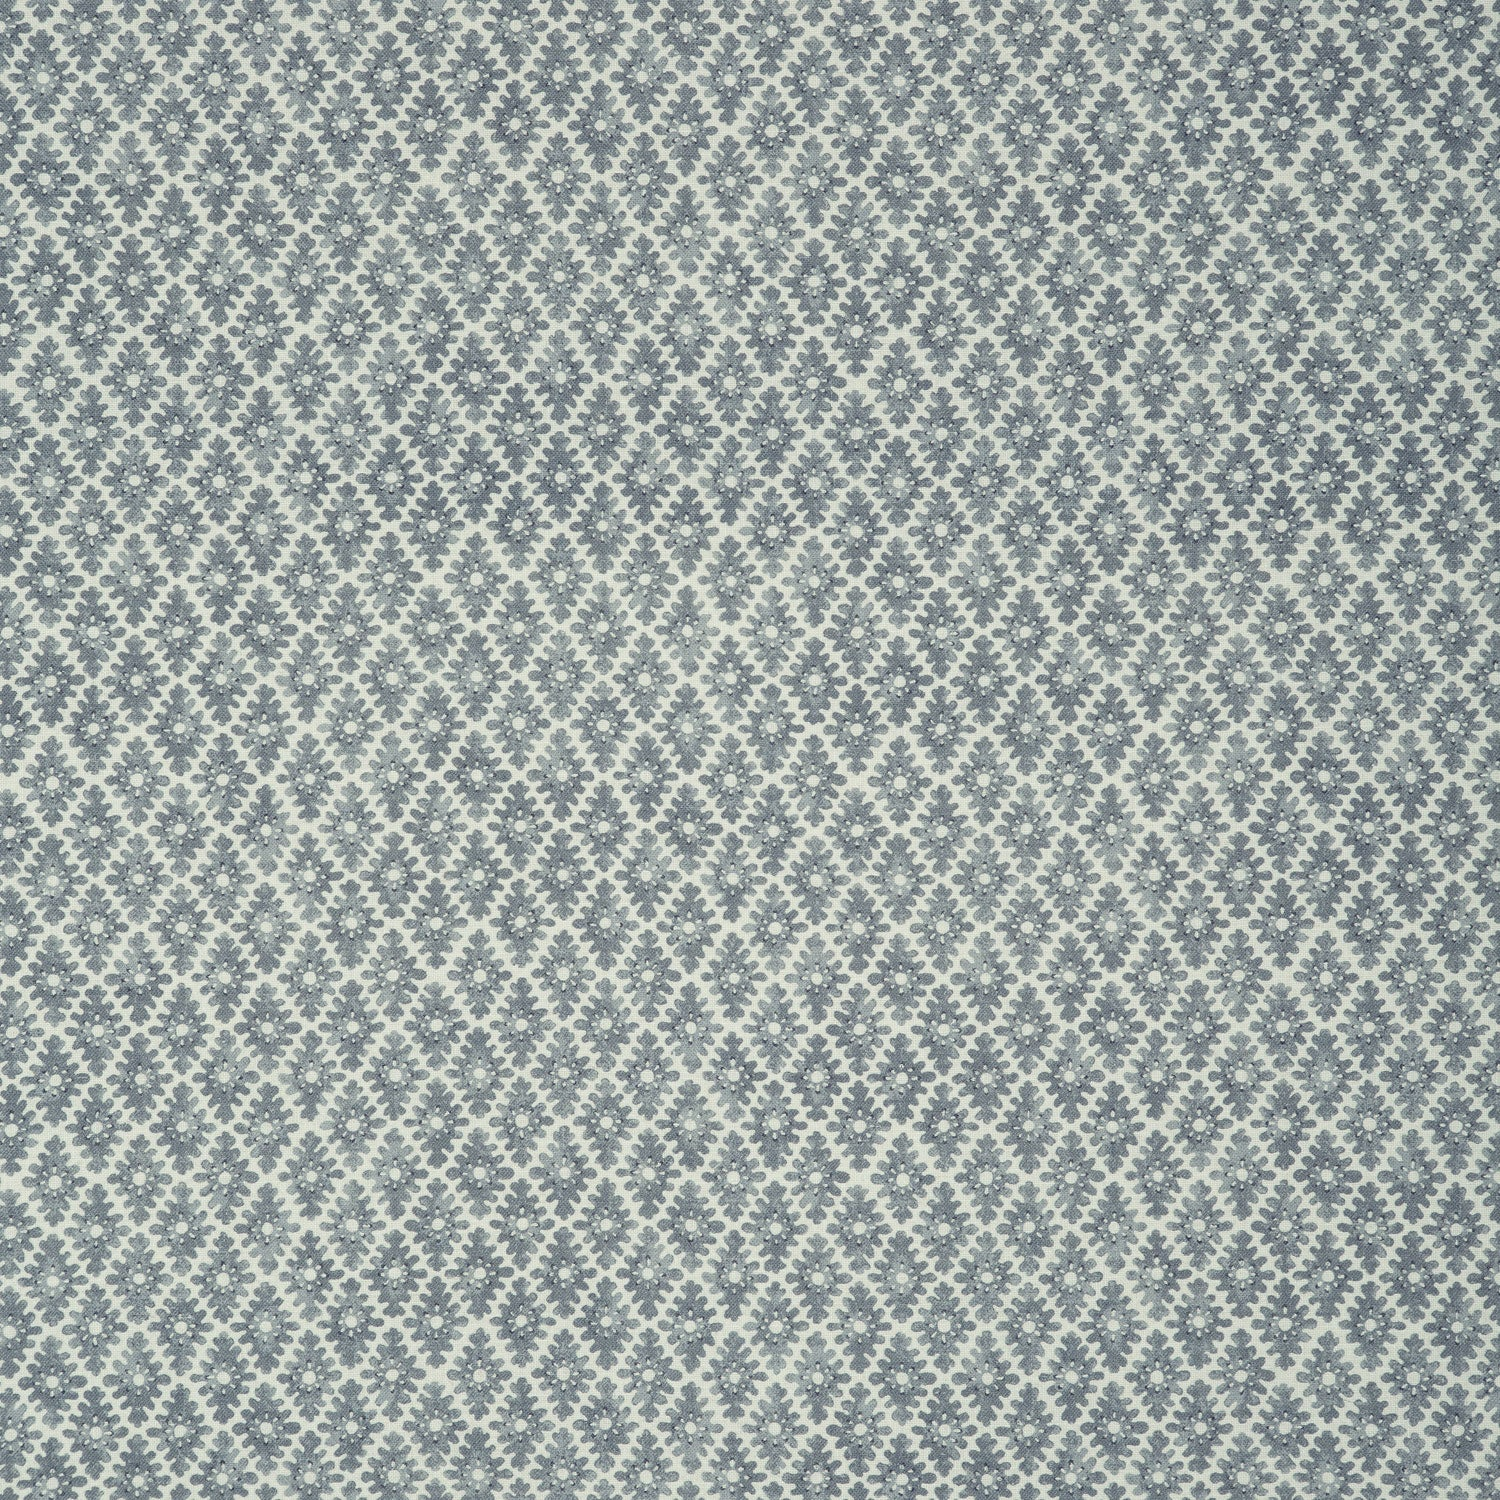 Fabric sample of a denim blue and neutral printed linen fabric for curtains and upholstery